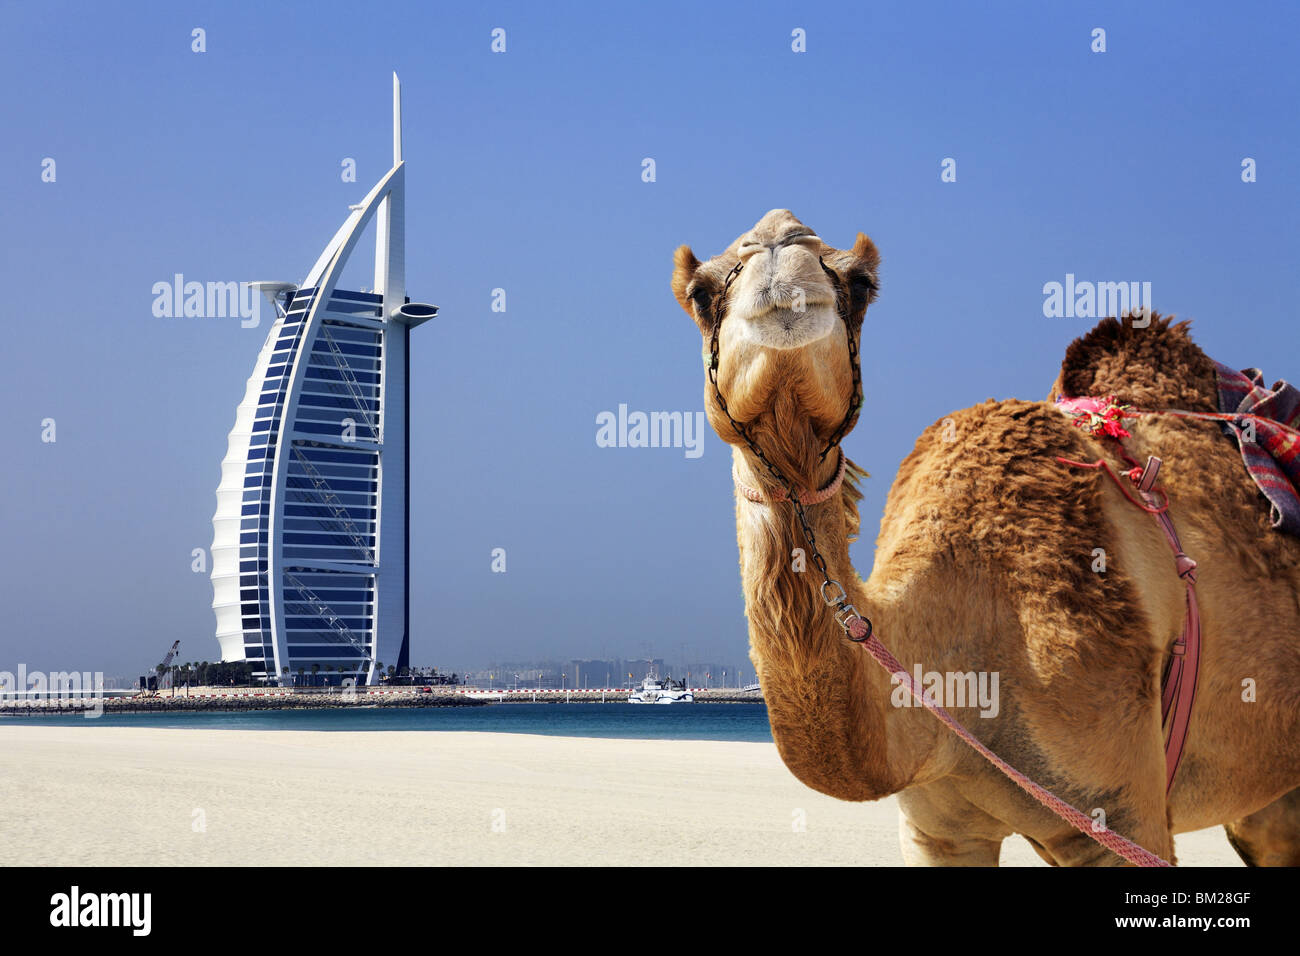 Camel with the burj al arab hotel in background dubai stock photo camel with the burj al arab hotel in background dubai altavistaventures Choice Image